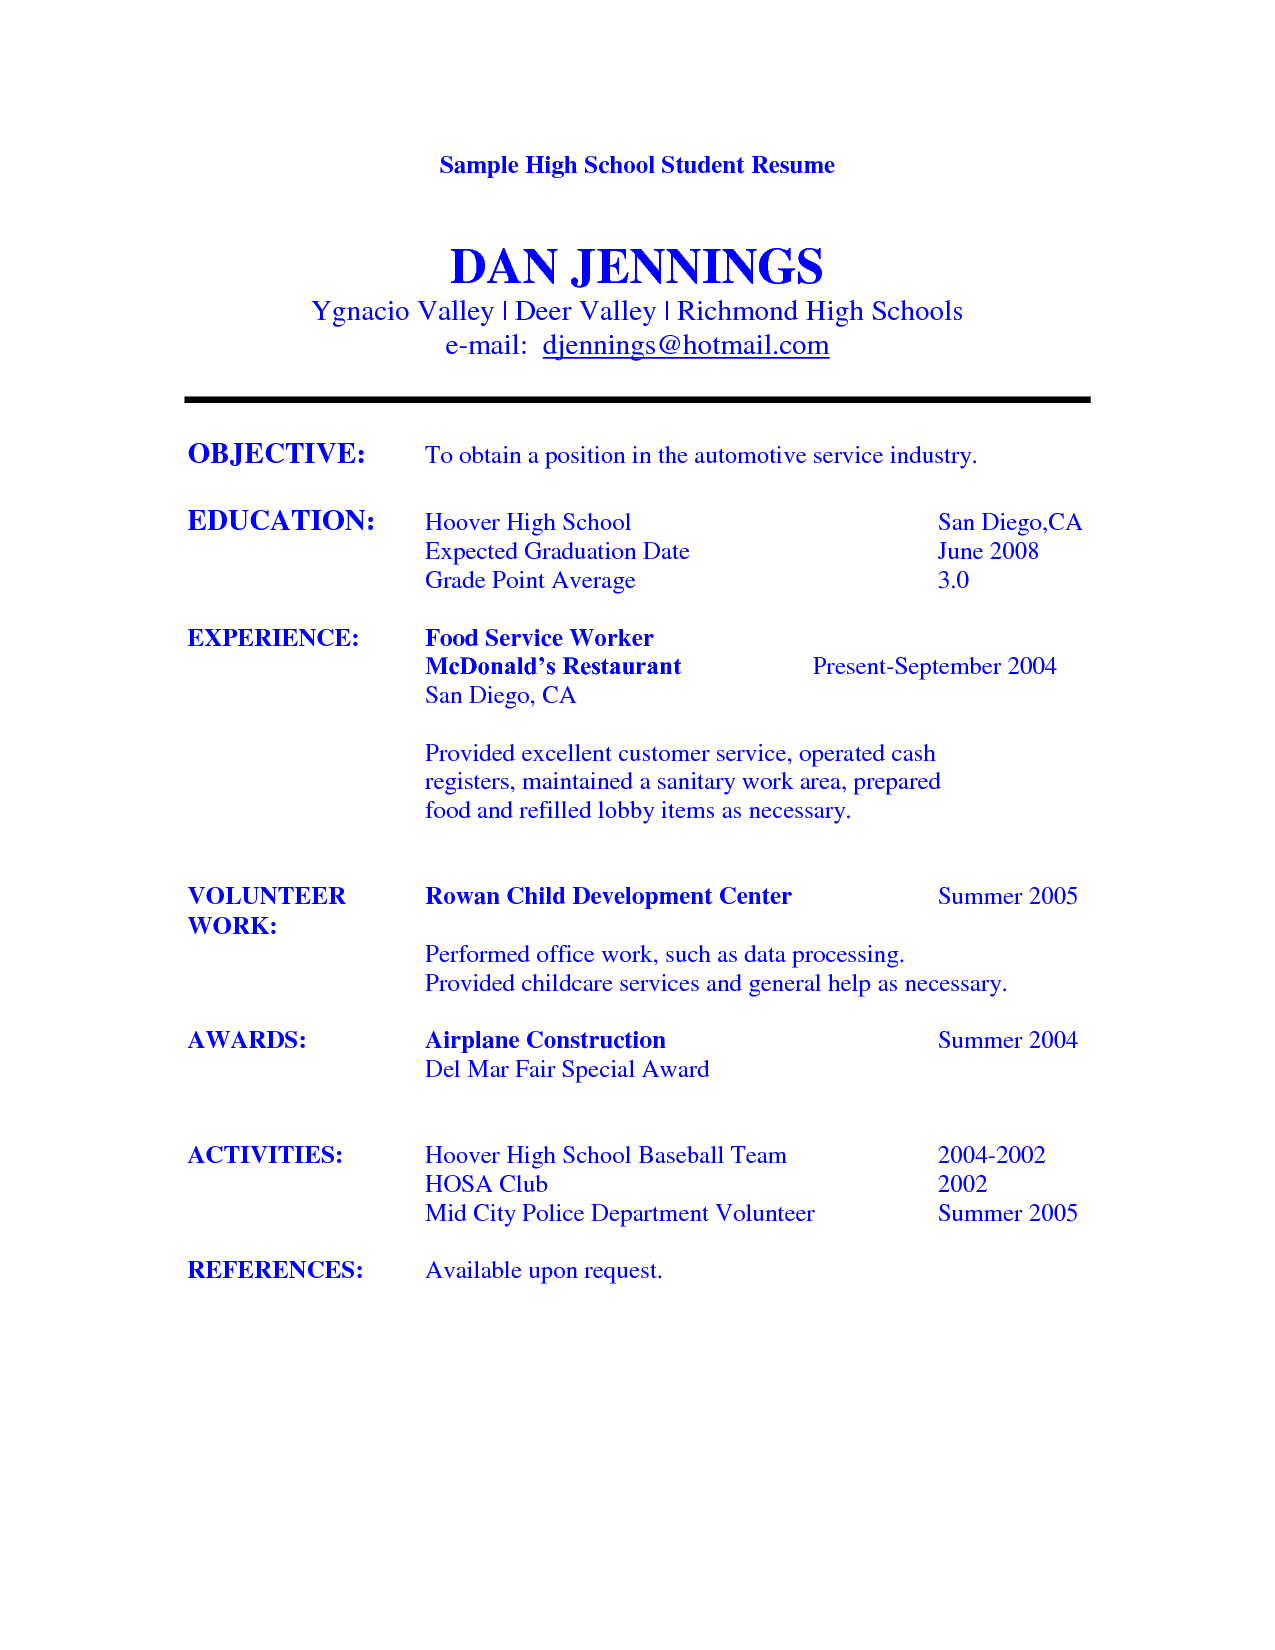 Resume Education Example Unique Resume Example For High School Student Sample Resumes  Httpwww Decorating Design